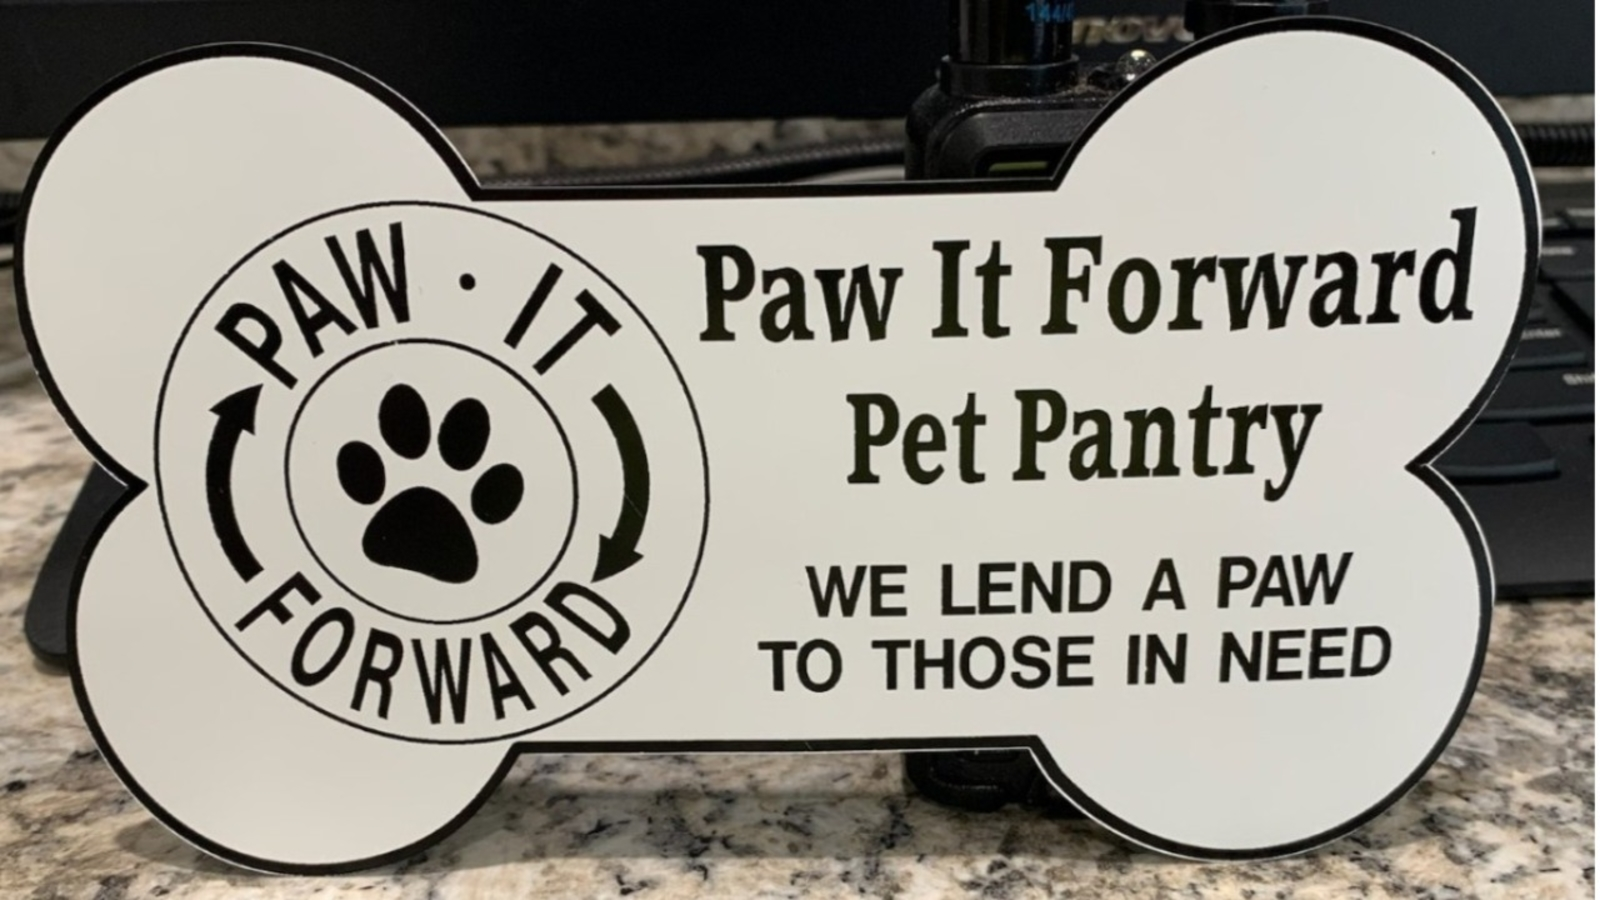 Coronavirus News: Paw it Forward Pet Pantry in need of donations in Valley Stream